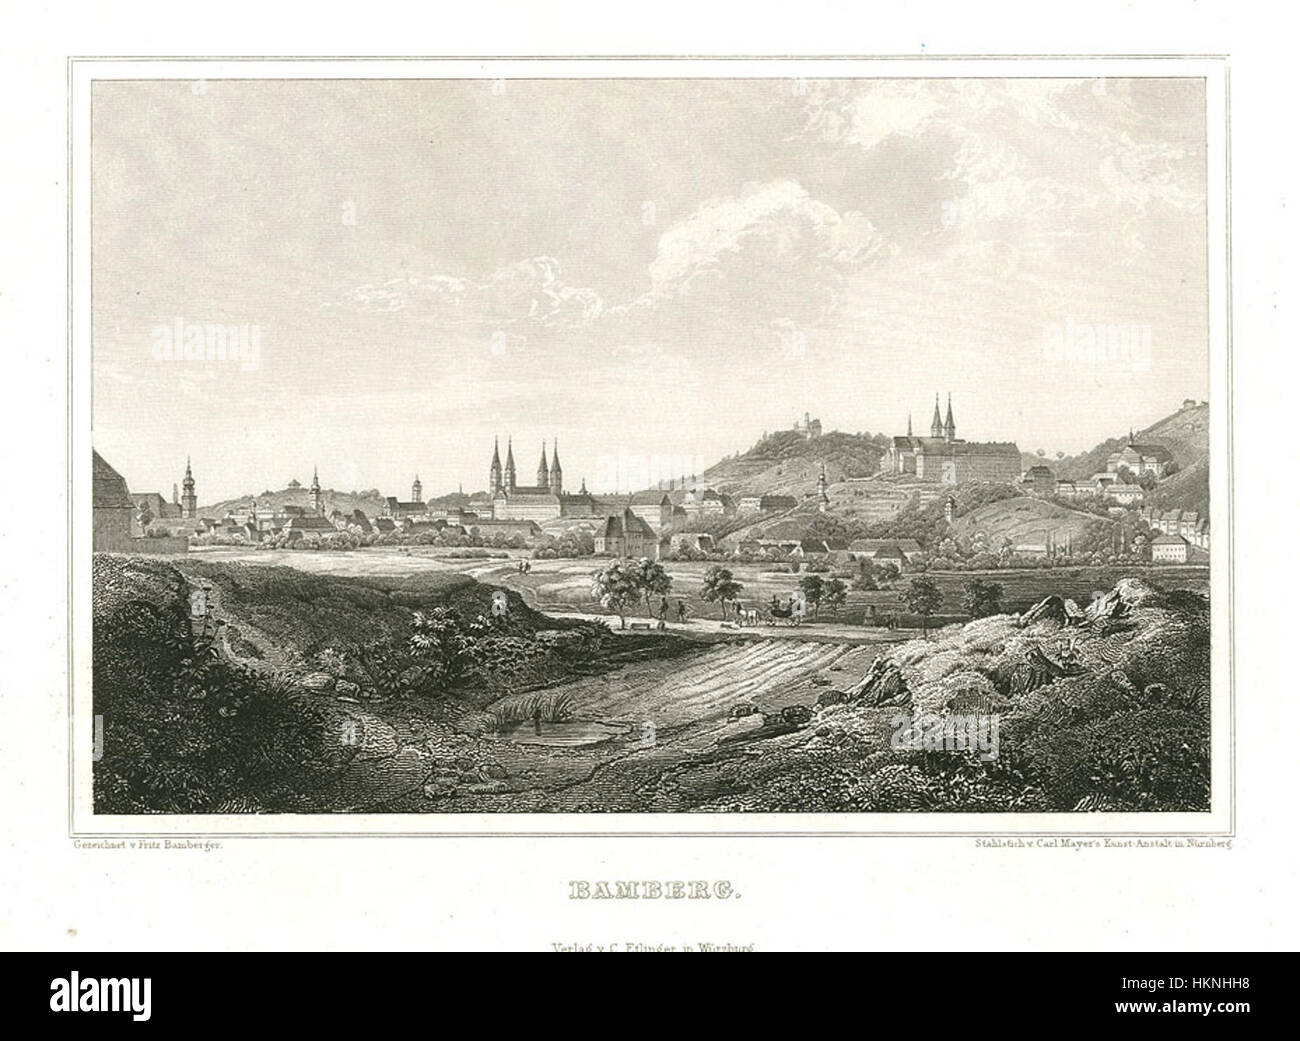 Bamberg Stahlstich 1847 - Stock Image